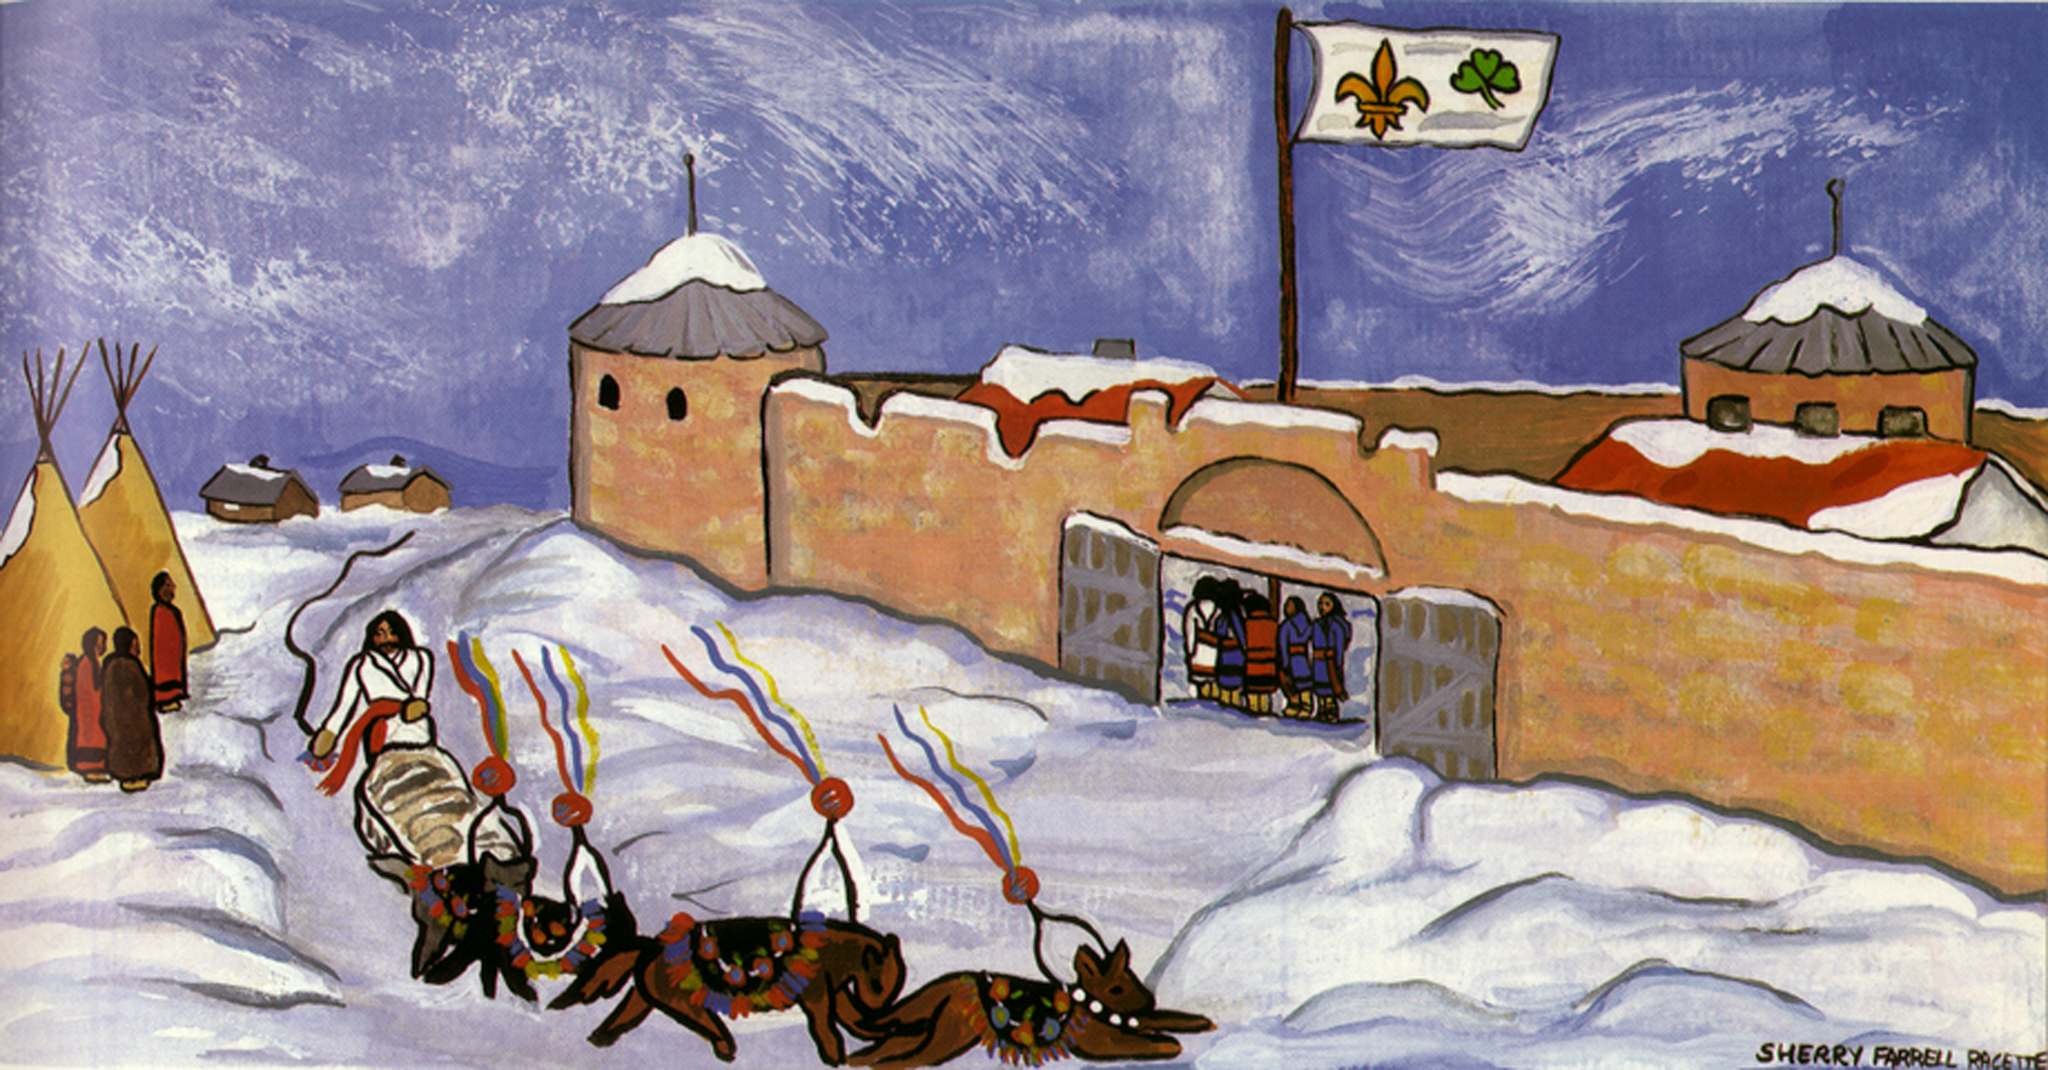 Fort Garry, in Métis Hands, by artist Sherry Farrell Racette. The painting depicts the Métis occupation of Upper Fort Garry in 1869 and includes the provisional government's new flag. (Courtesy of the Gabriel Dumont Institute) </p>